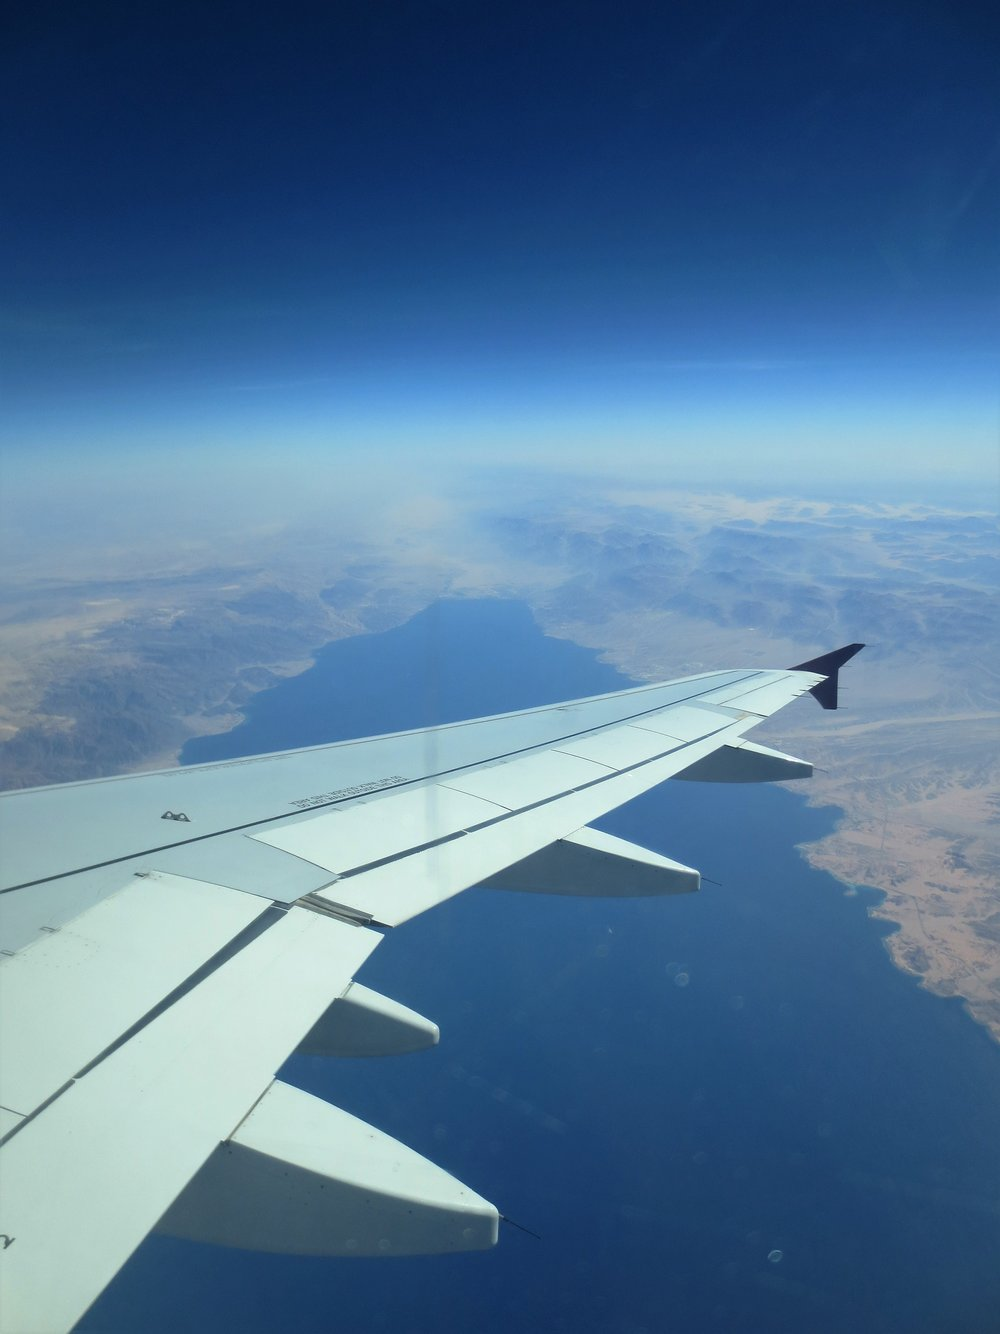 36000 feet above the Gulf of Aqaba through the window of a Qatar Airways Airbus 320